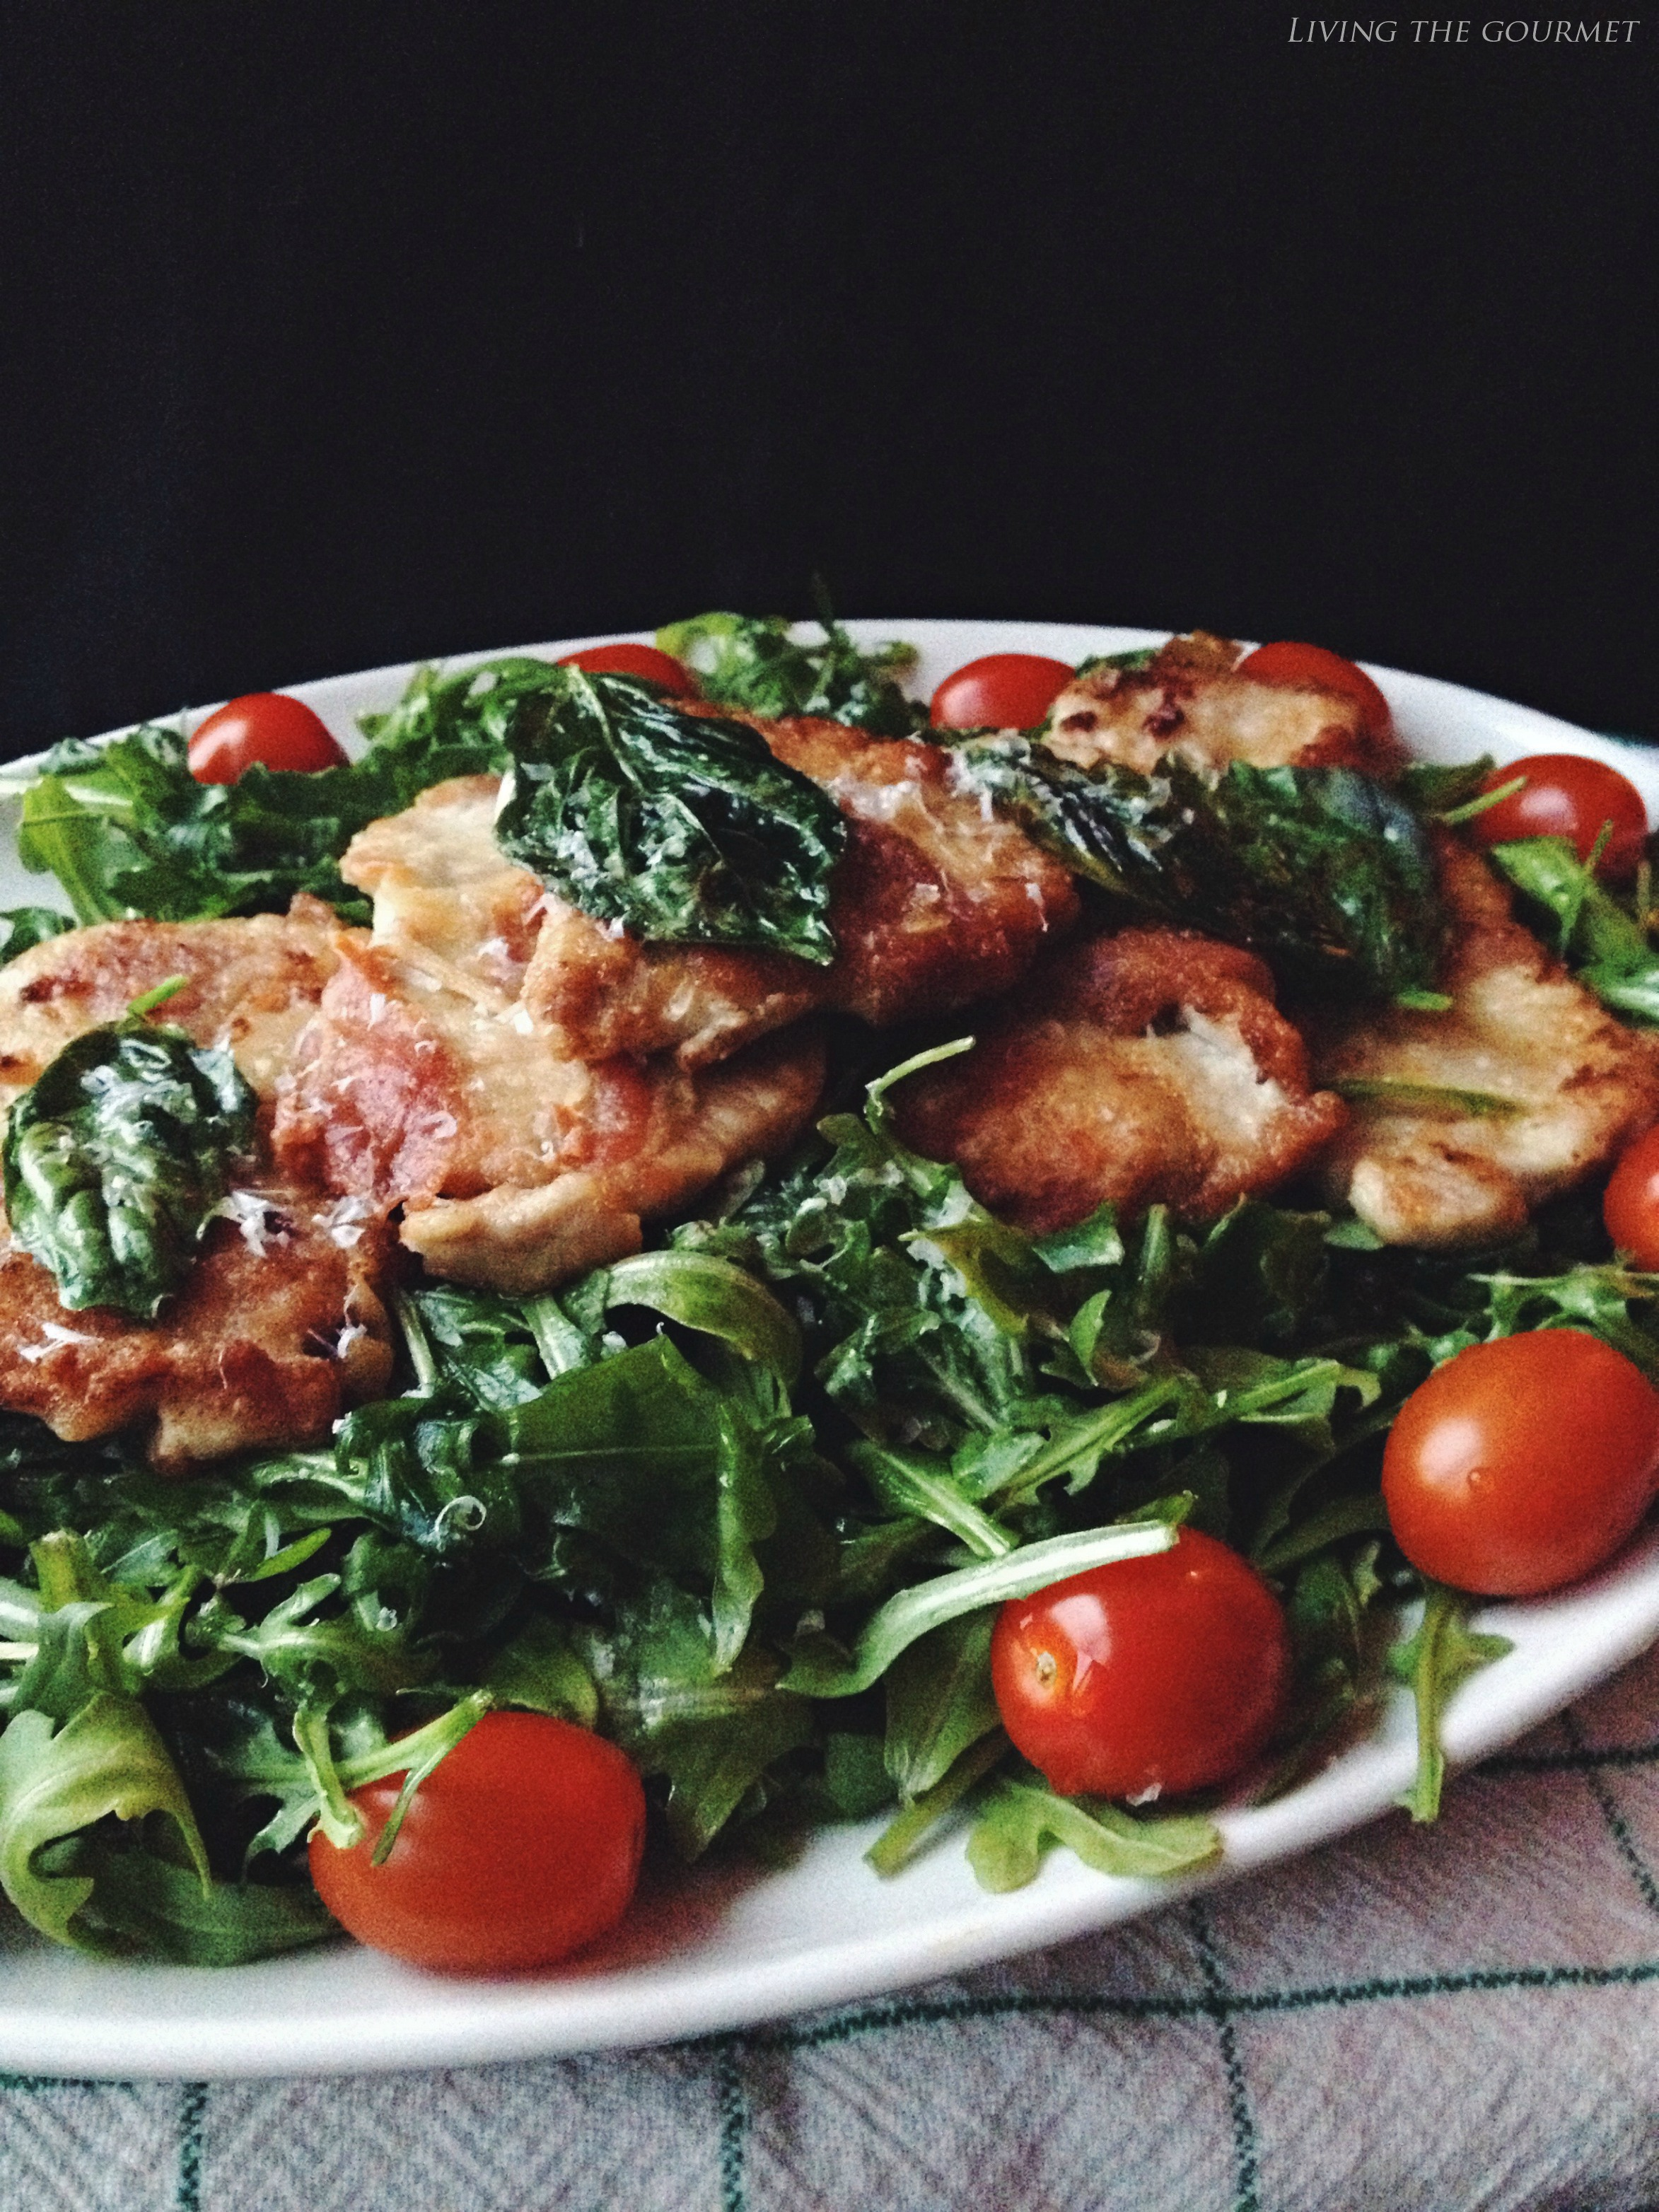 Living the Gourmet: Pork Saltimbocca